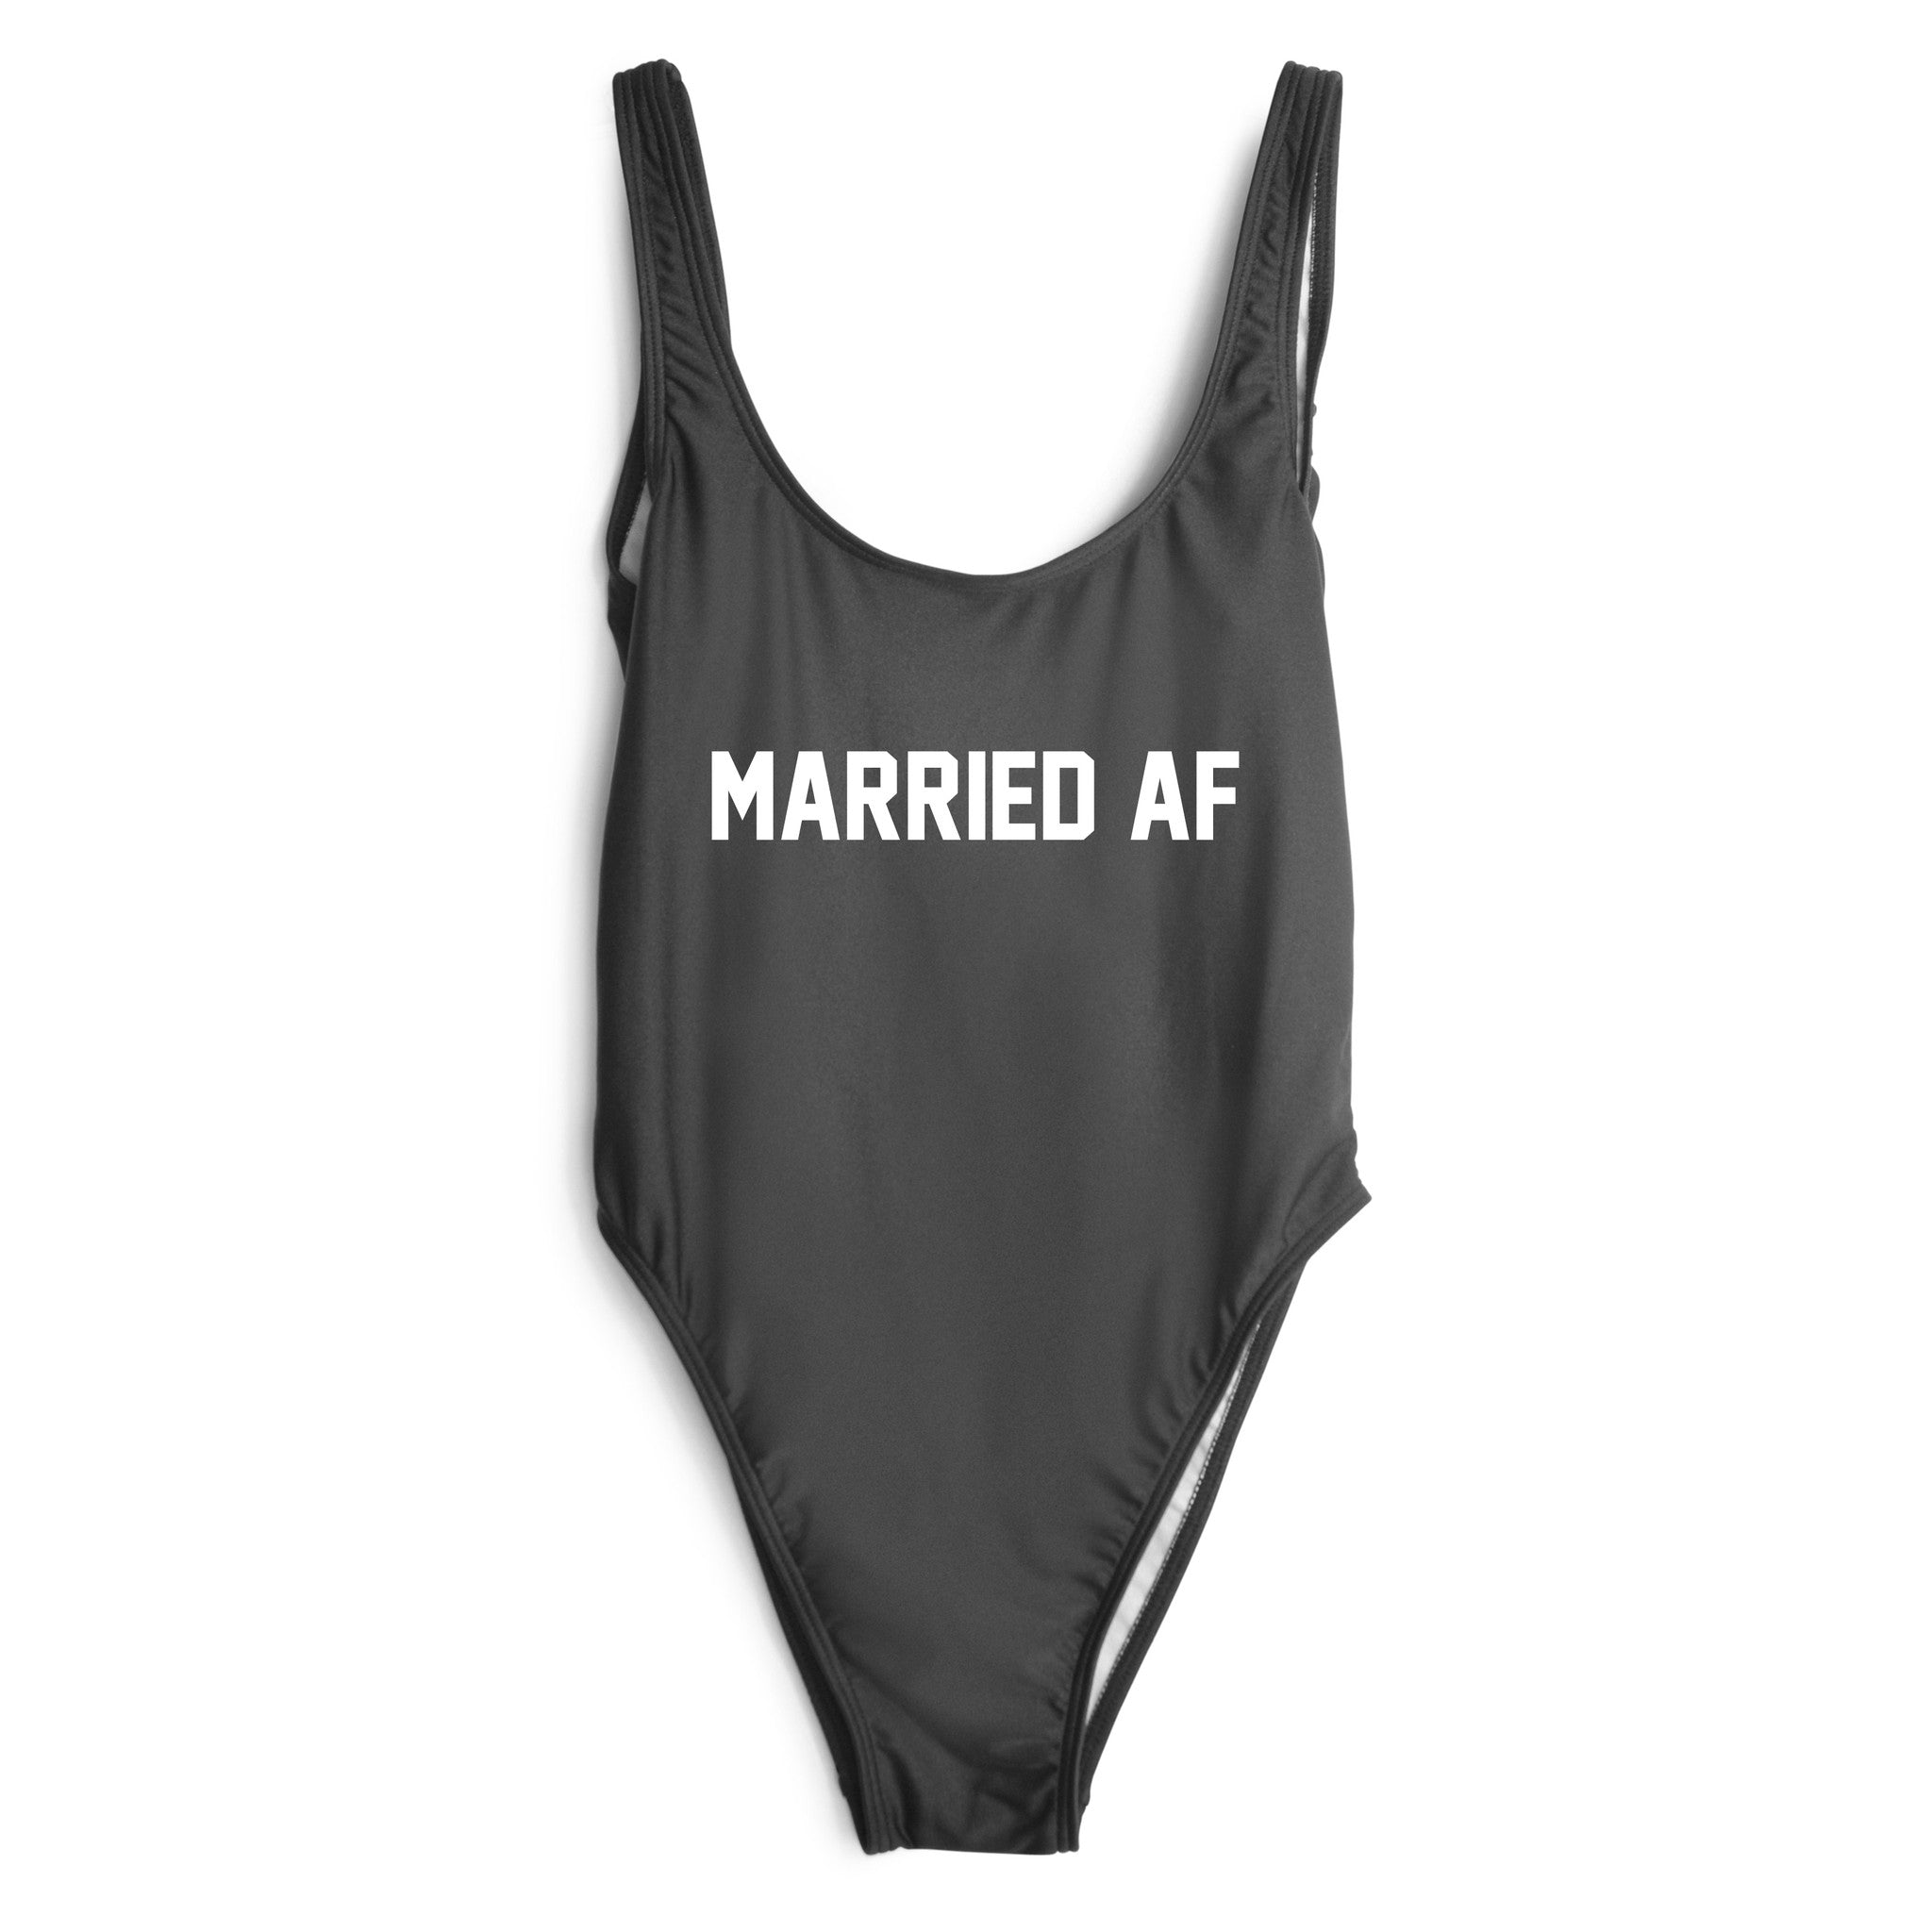 MARRIED AF [SWIMSUIT]